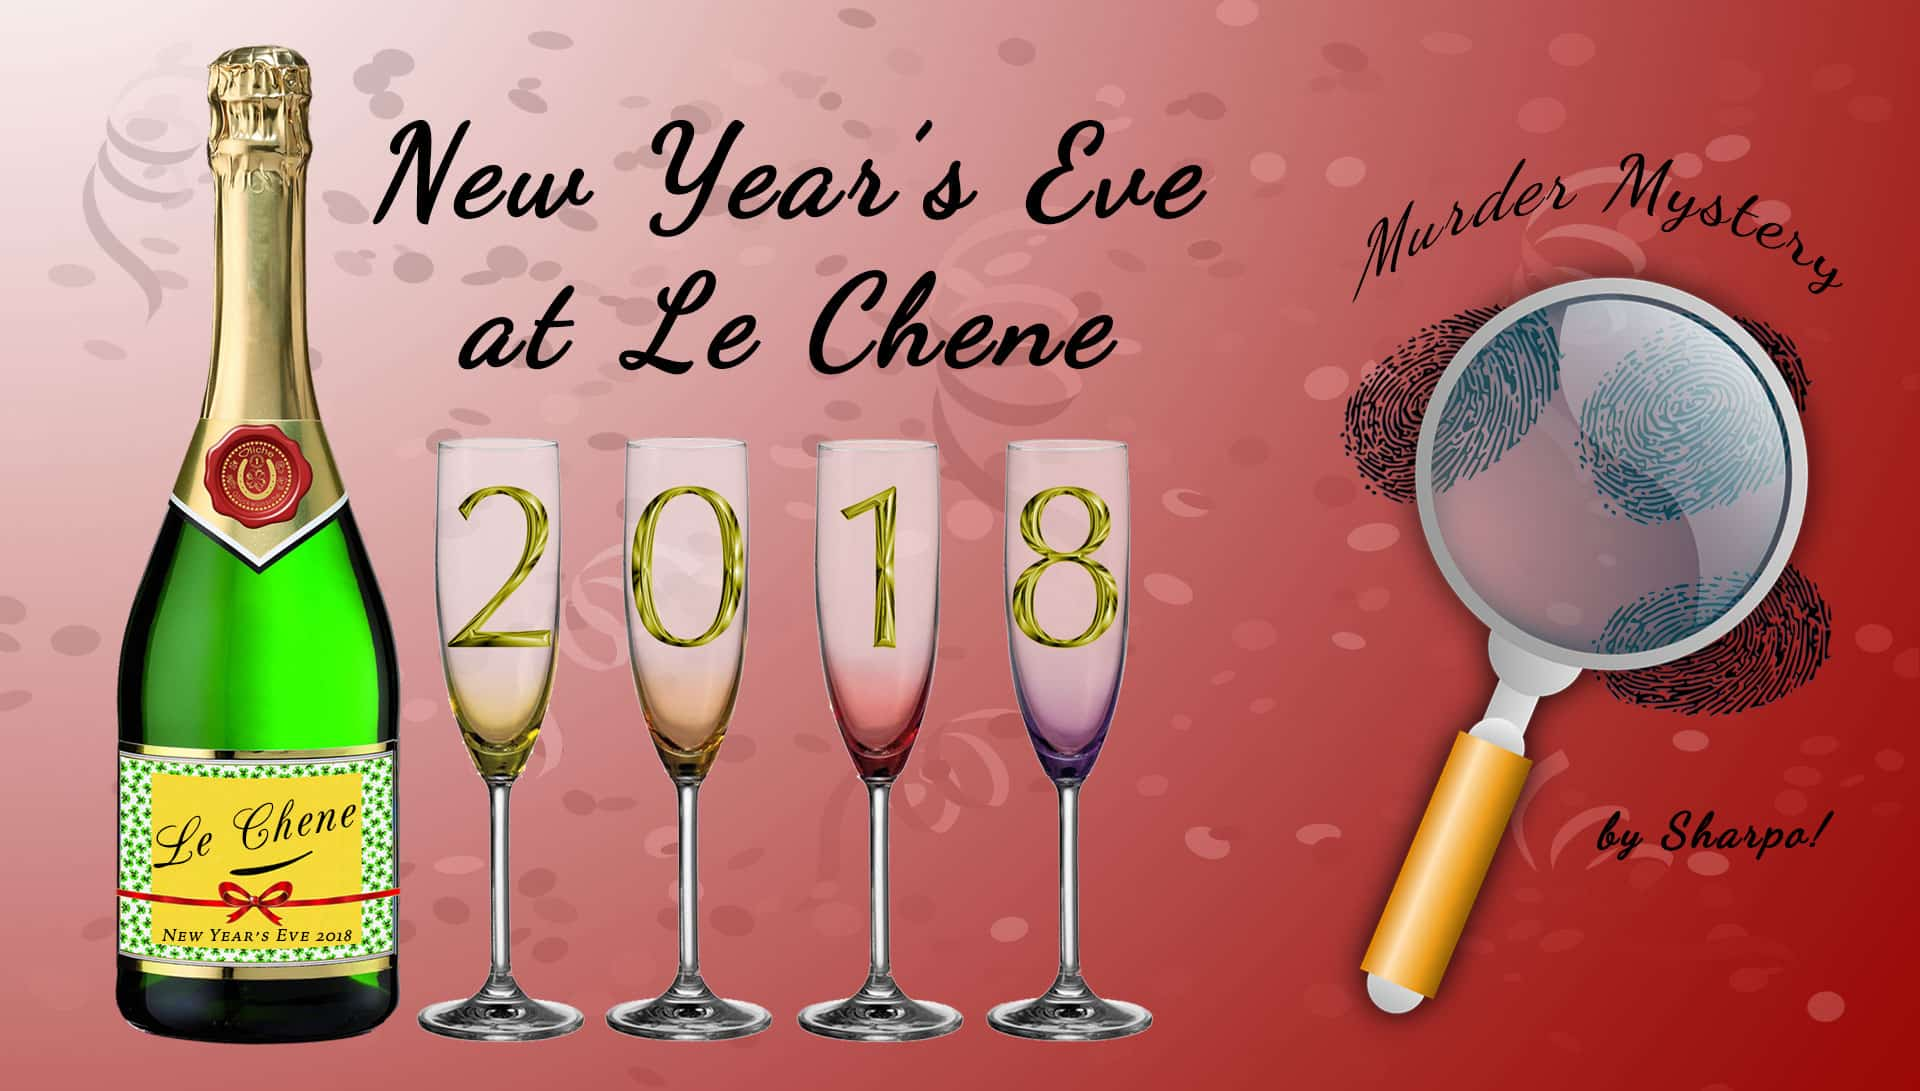 Le Chene New Year's Eve 2018 - Murder Mystery Event Image